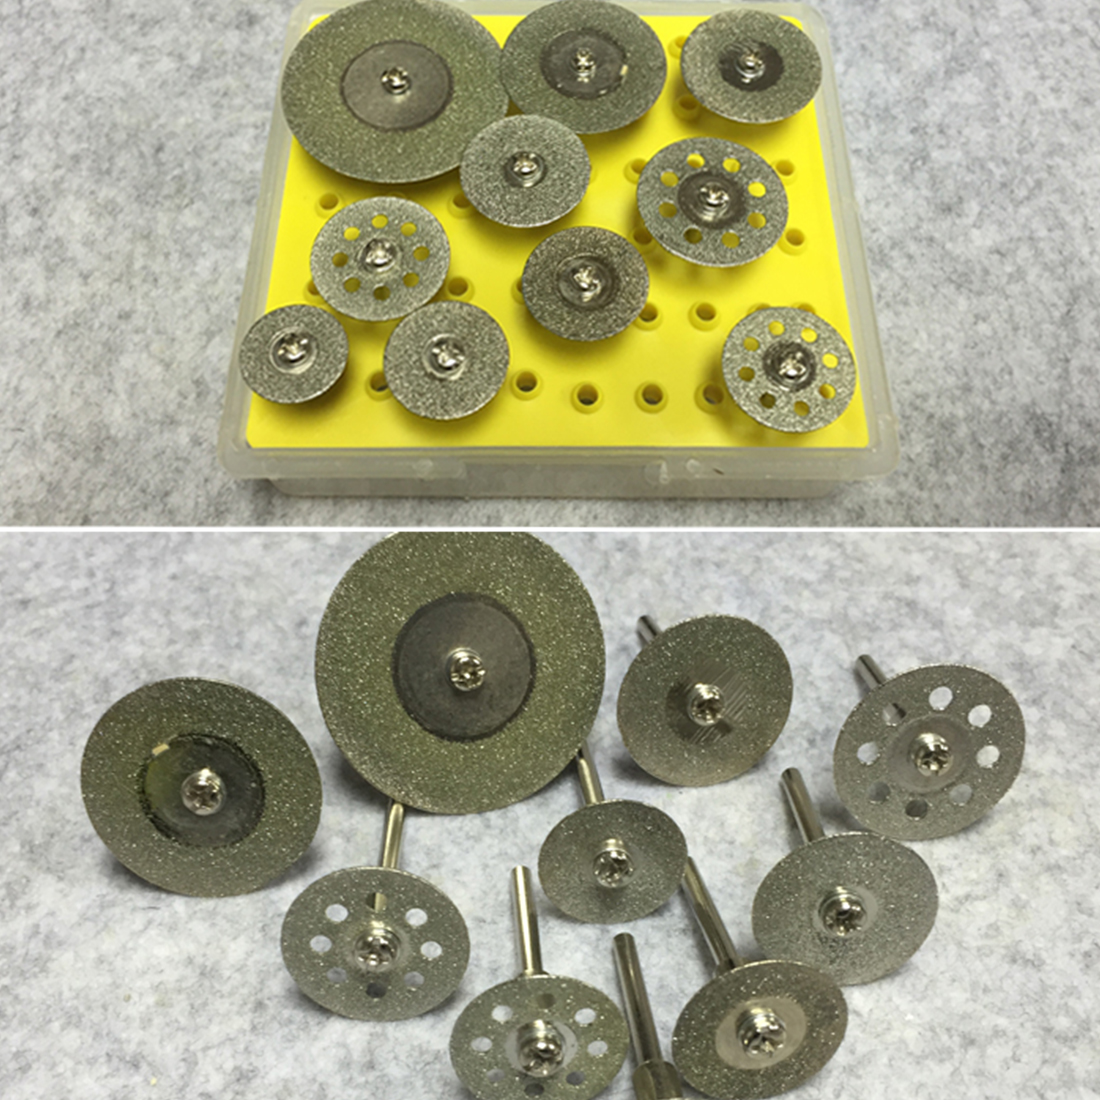 New 10Pcs Diamond Cutting Discs Cut-off Hold Wheel Set For Dremel Rotary Tool Cutting / Grinding / Engraving Tools